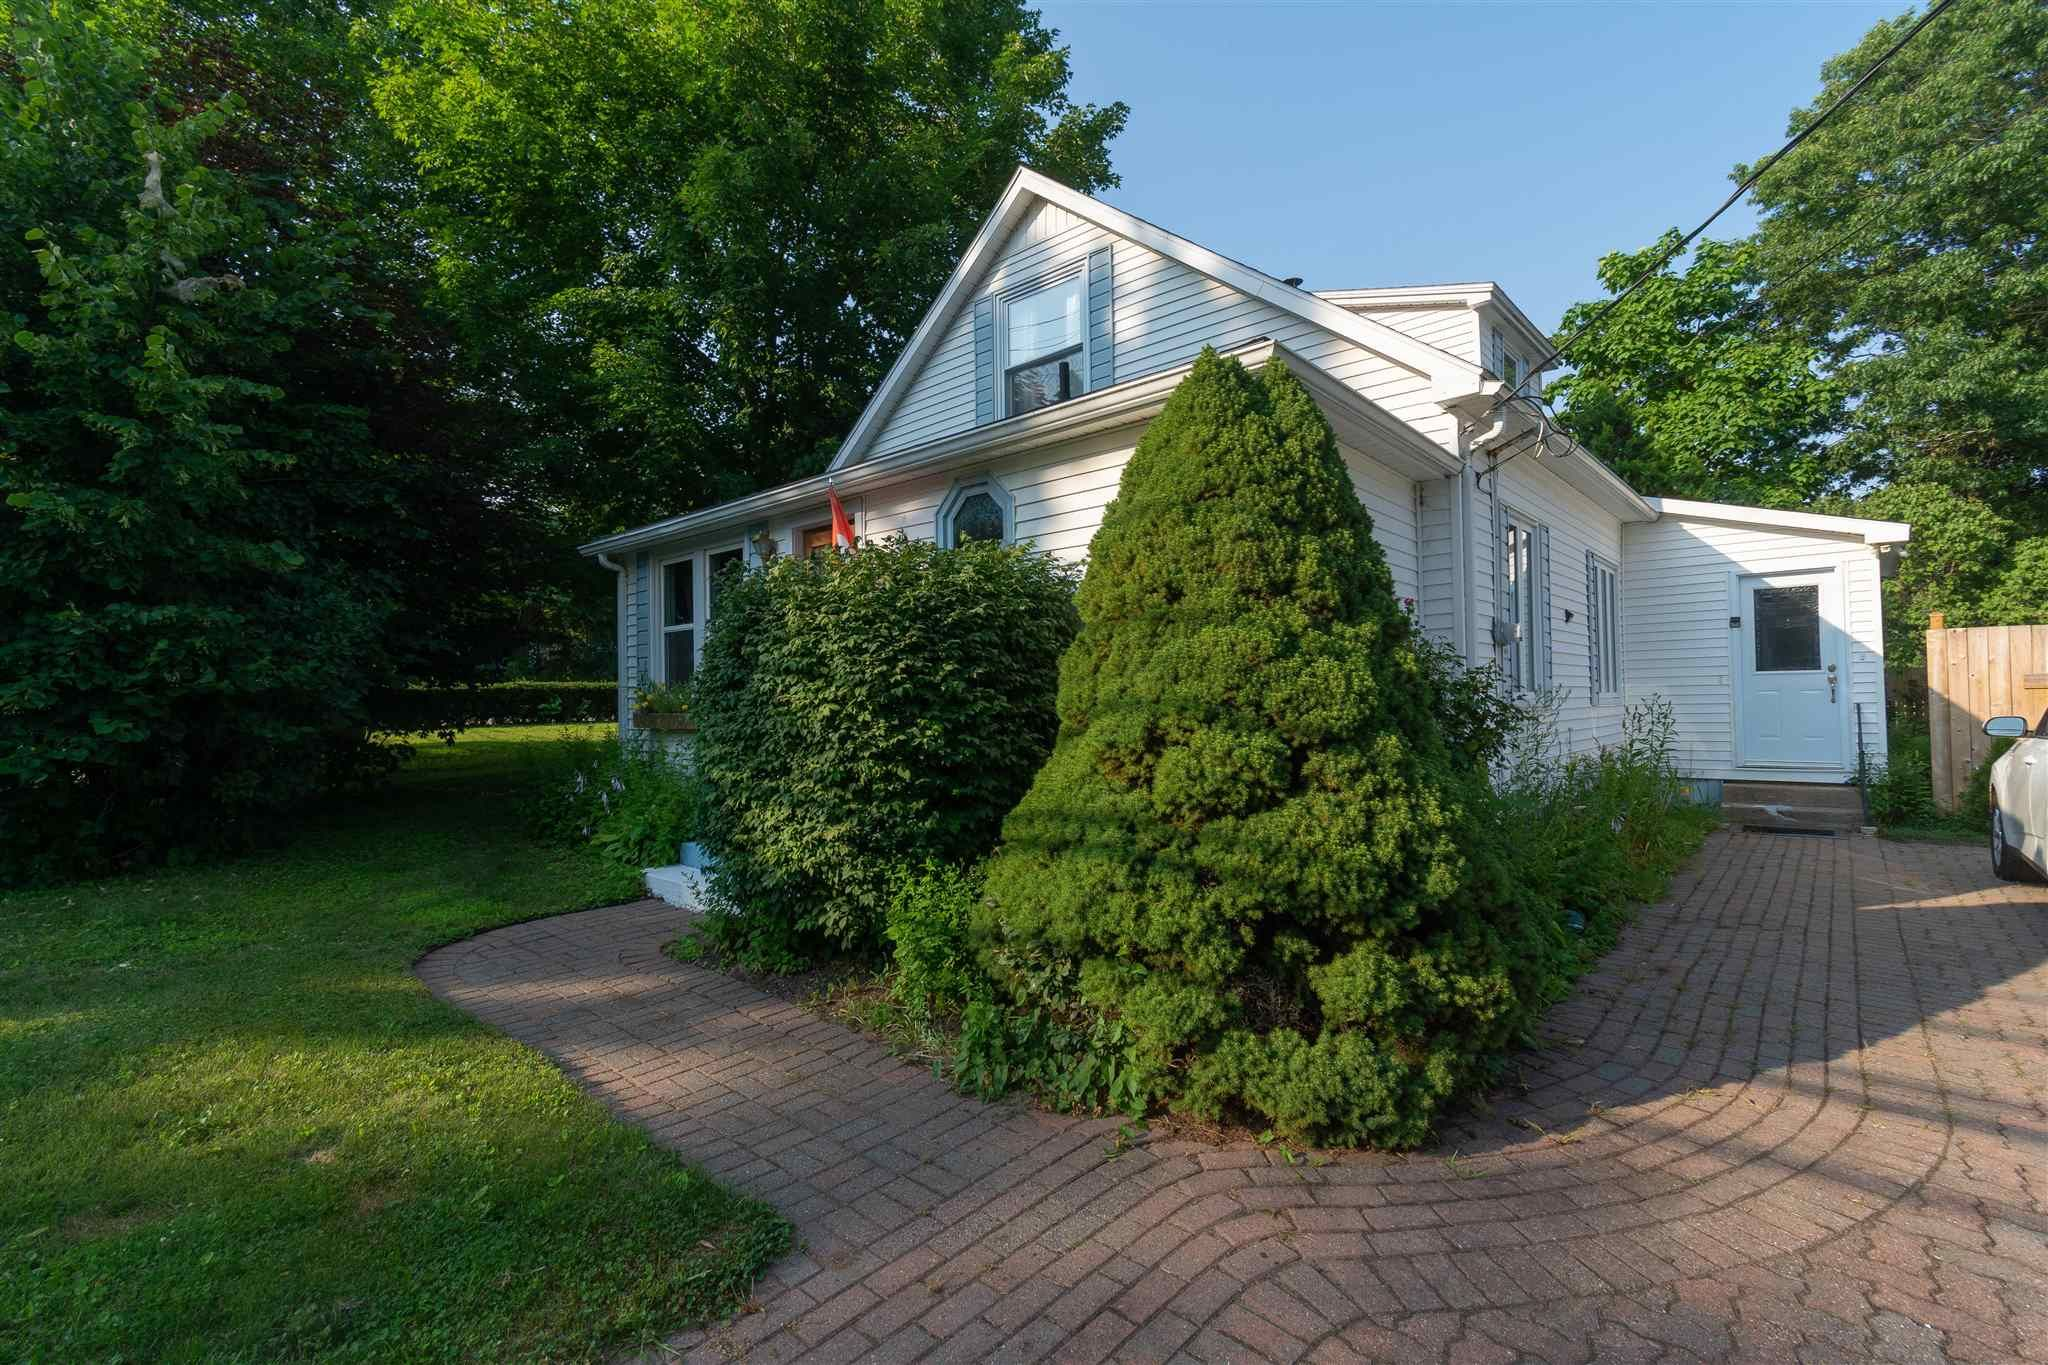 Main Photo: 29 Bridge Street in Middleton: 400-Annapolis County Residential for sale (Annapolis Valley)  : MLS®# 202119497